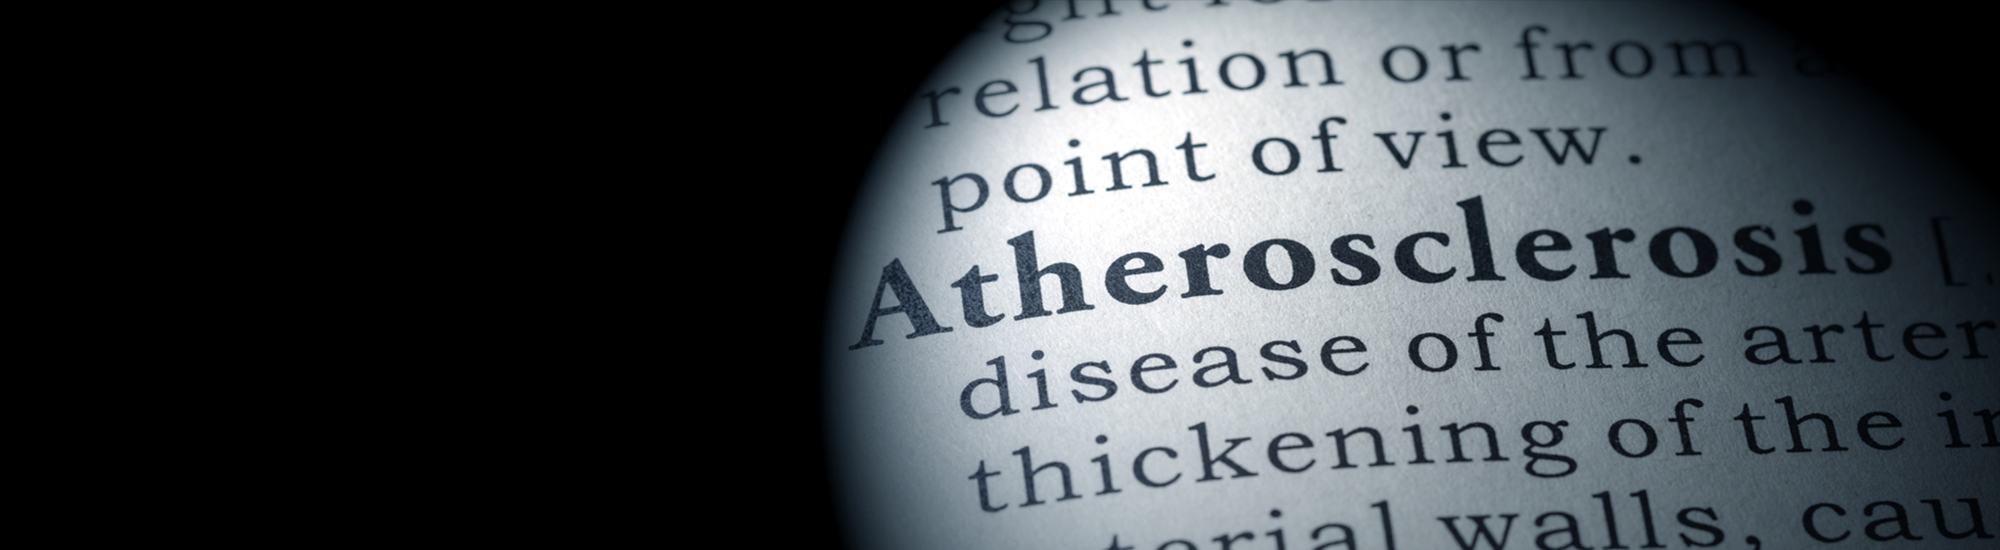 Ayurvedic treatment for Atherosclerosis FAQs